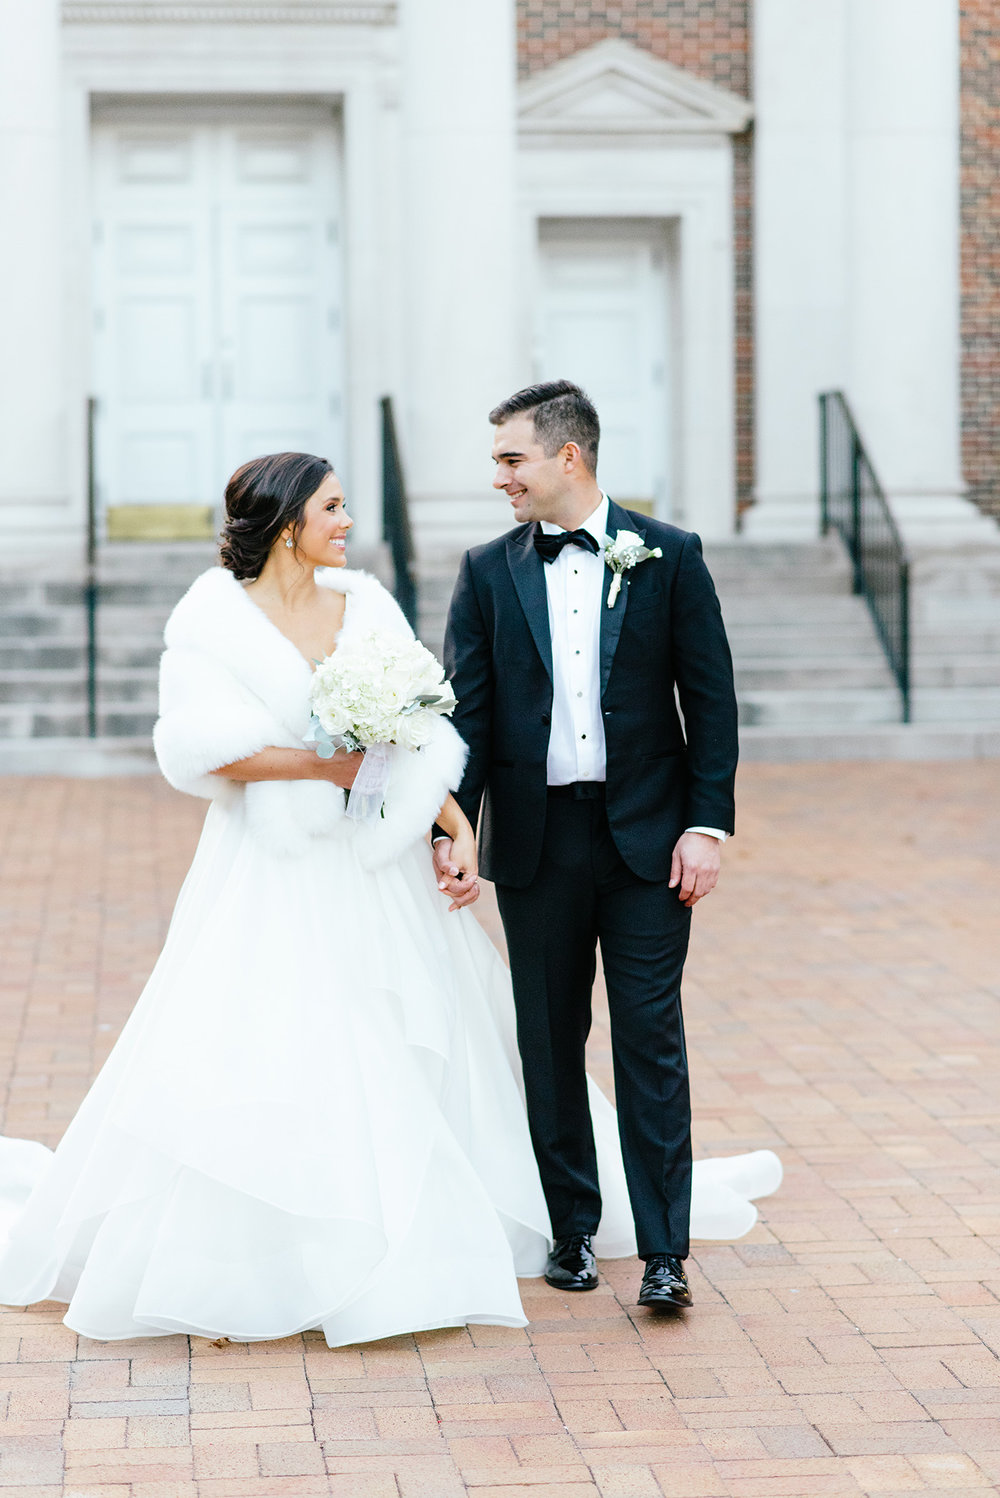 MattAndJulieWeddings-PerkensChapelWedding-RoomonMain-Alyssa+Chris296.jpg